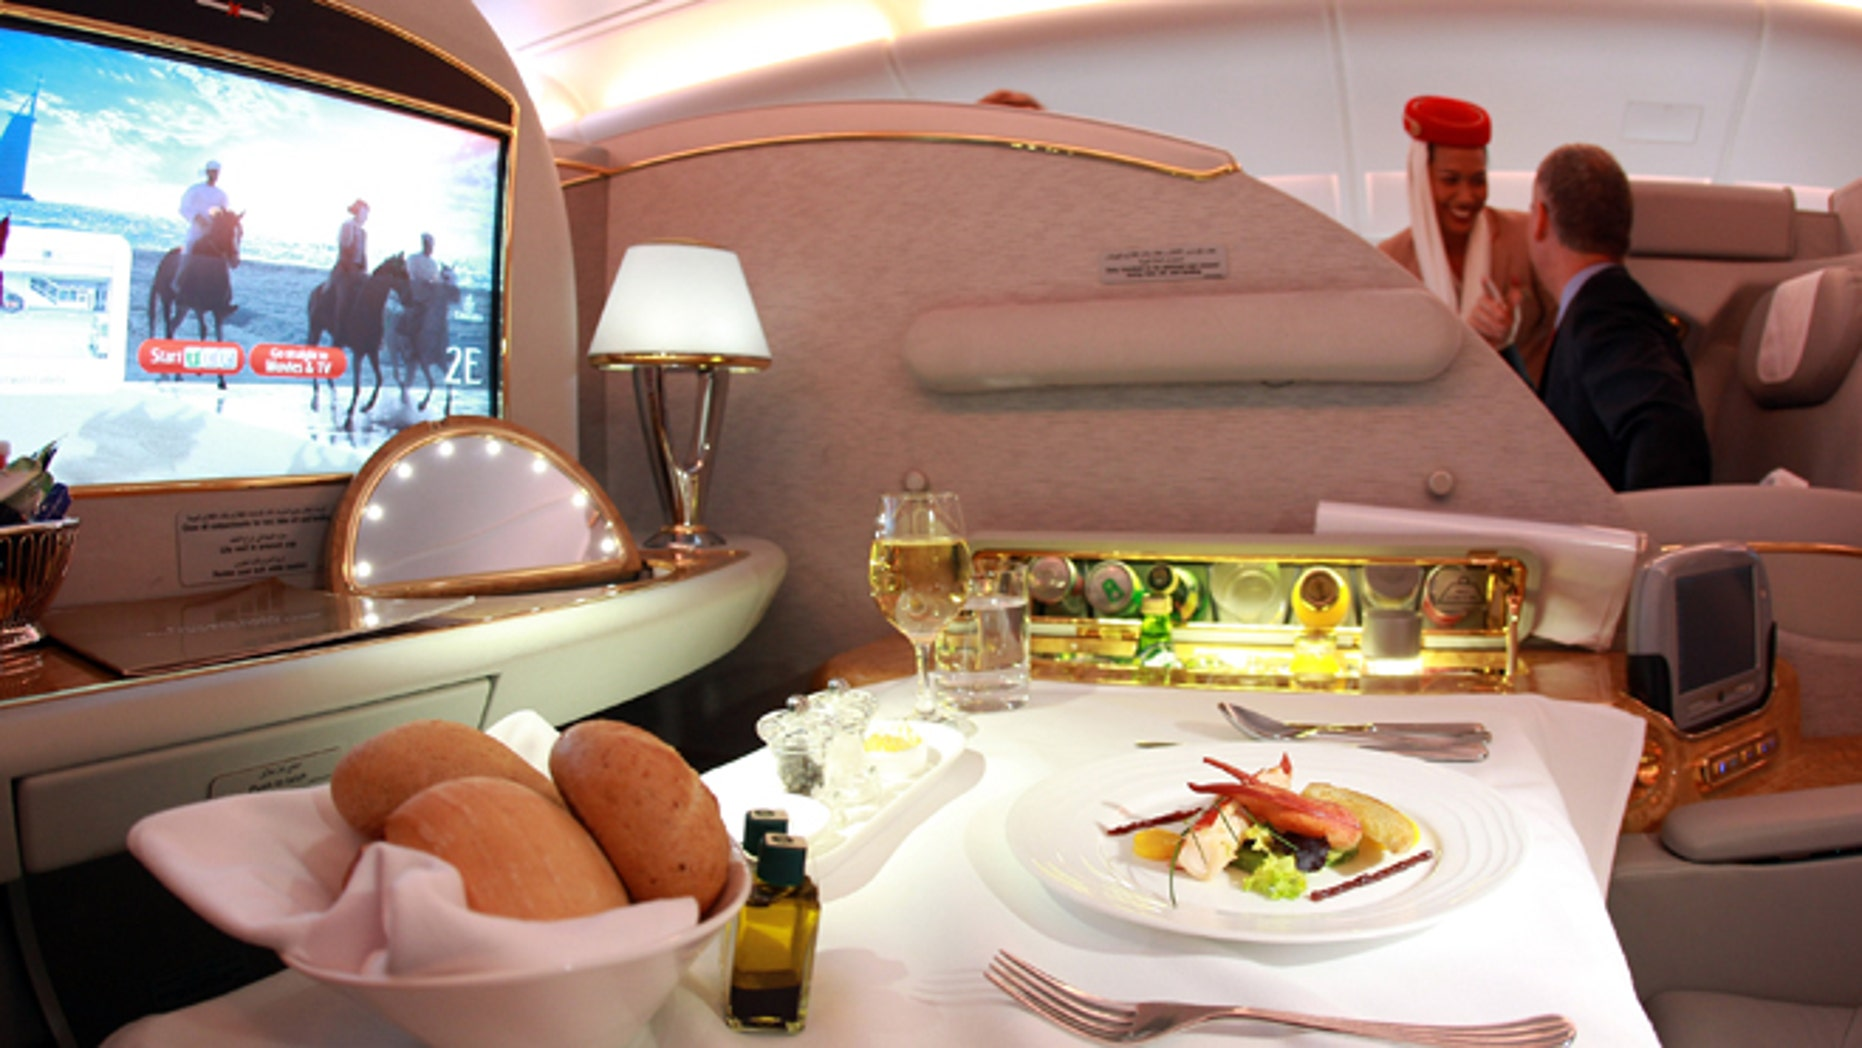 First class seat of Emirates Airbus A380 registration A6-EDP at Munich Airport Franz Joseph Strauss on November 25, 2011 in Munich, Germany. (Photo by Alexander Hassenstein/Getty Images)